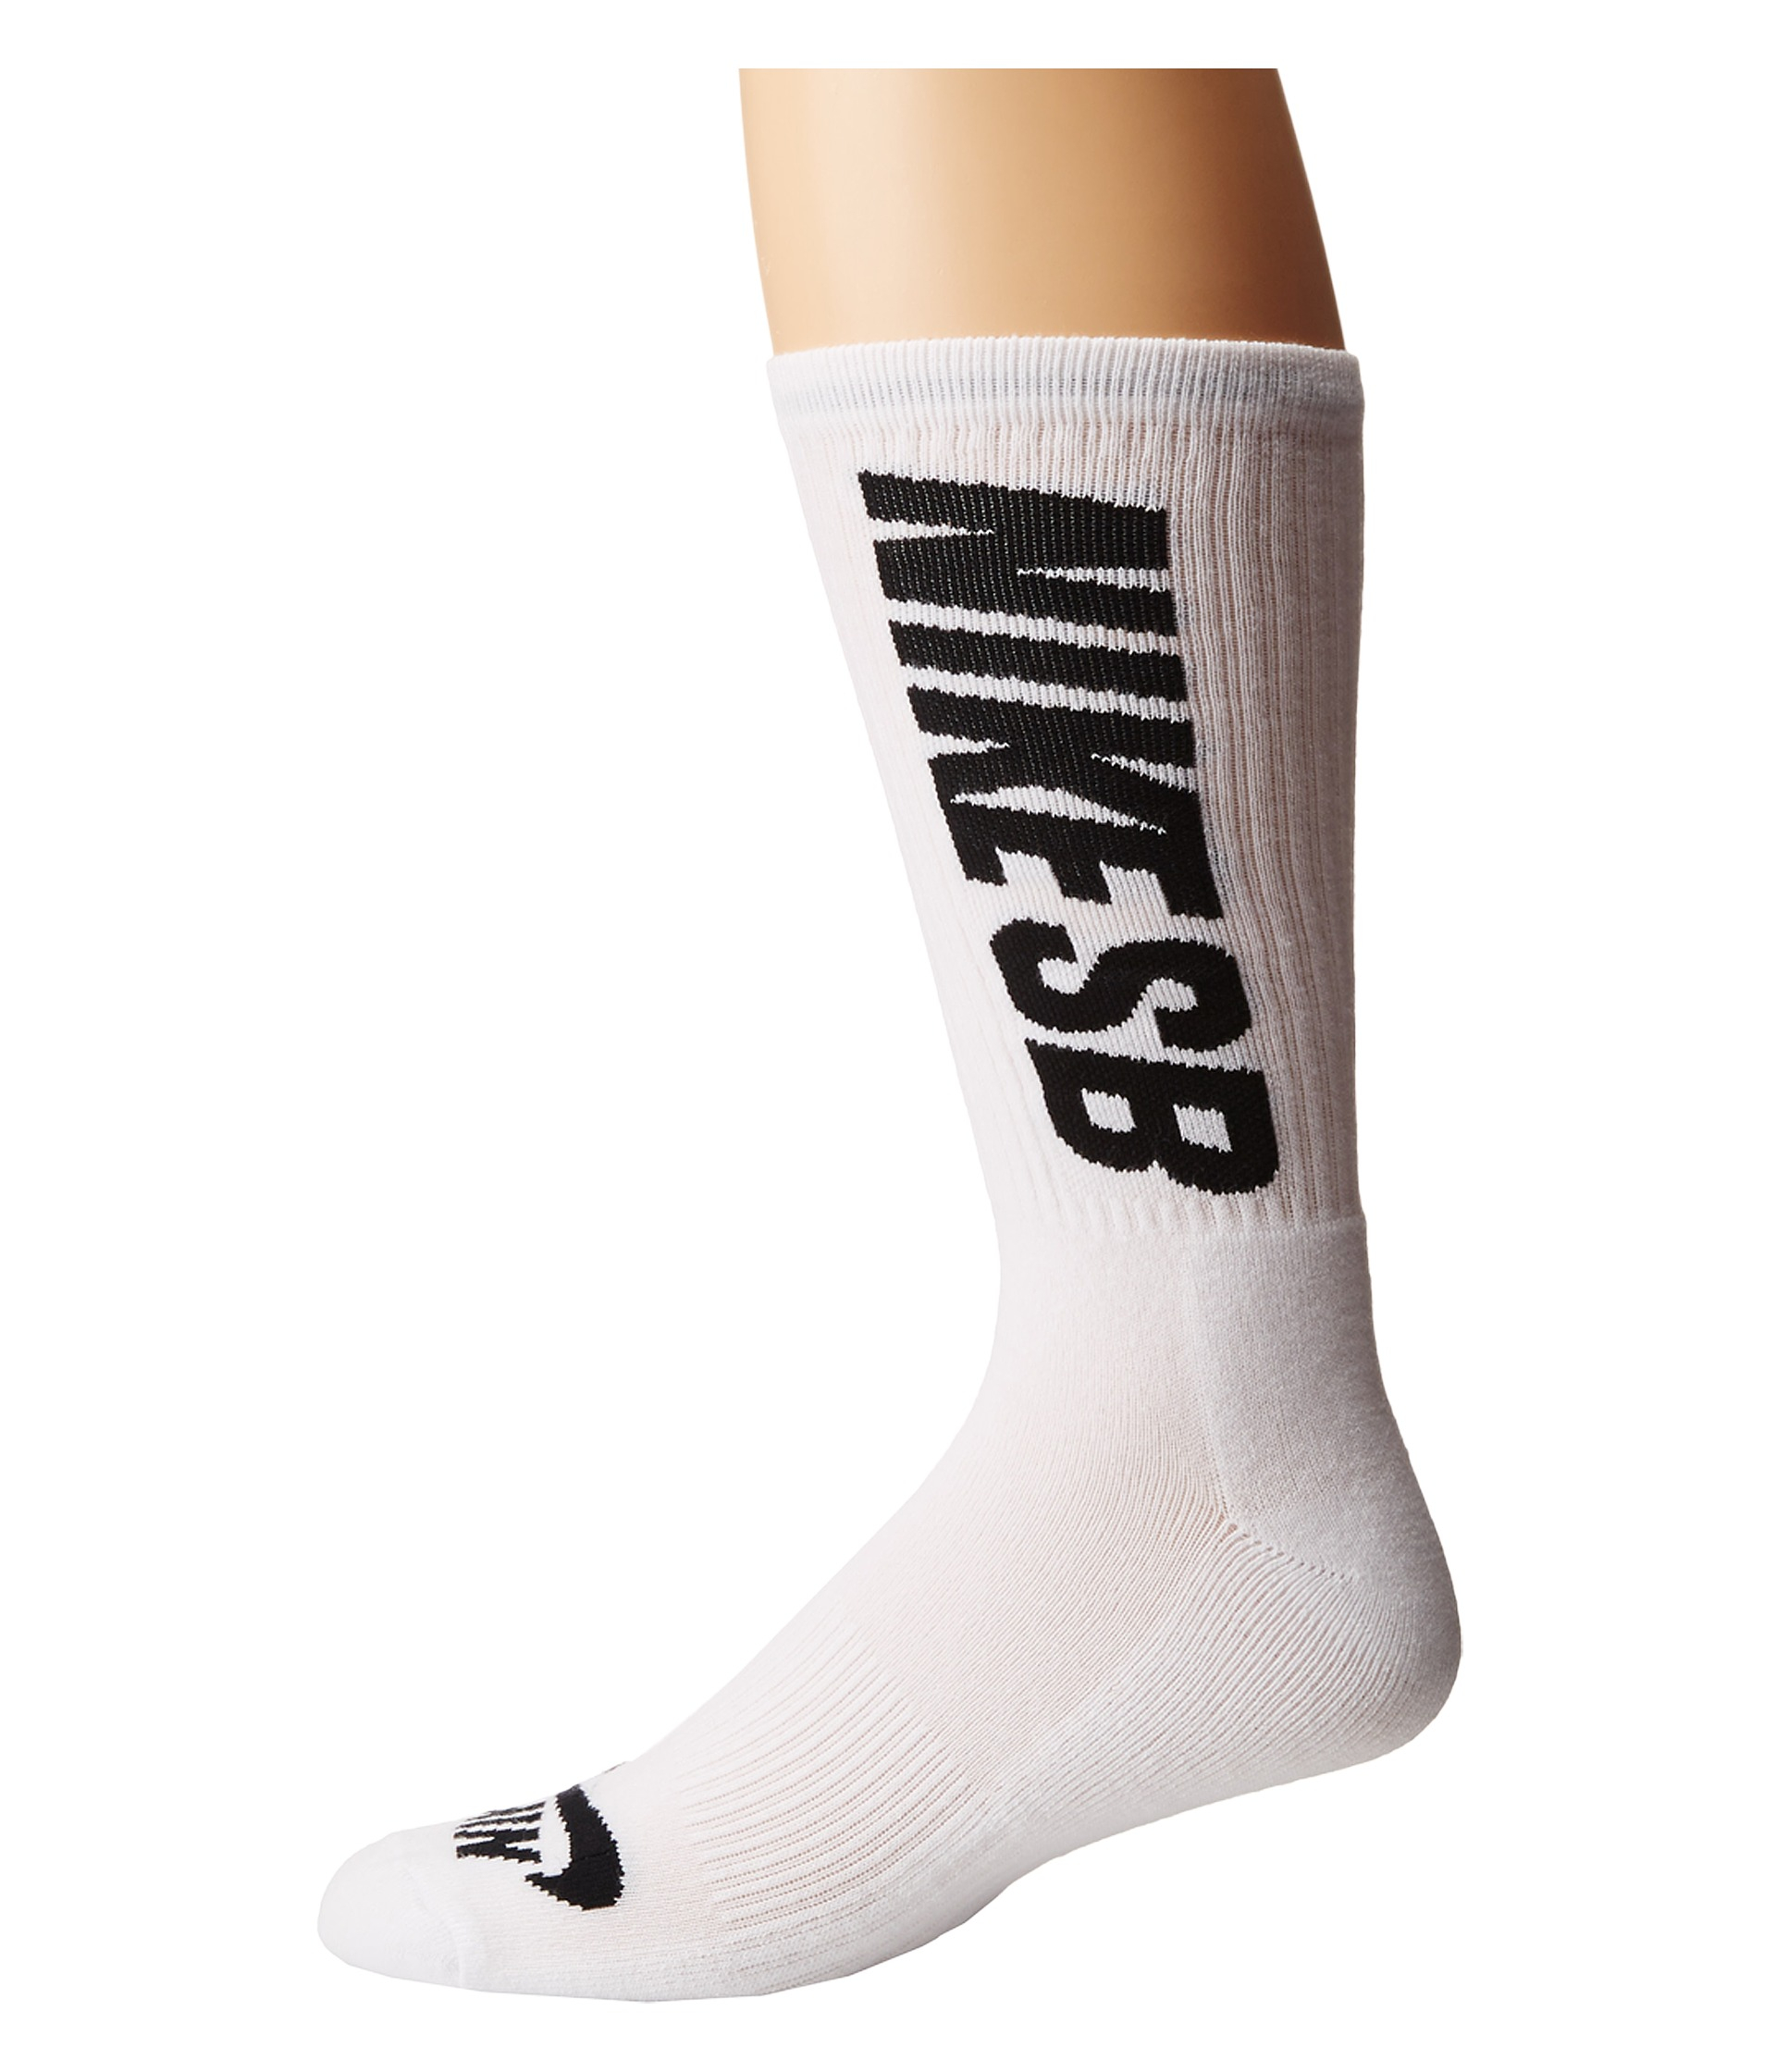 nike sb sb 3 pack crew socks in white for men white black. Black Bedroom Furniture Sets. Home Design Ideas